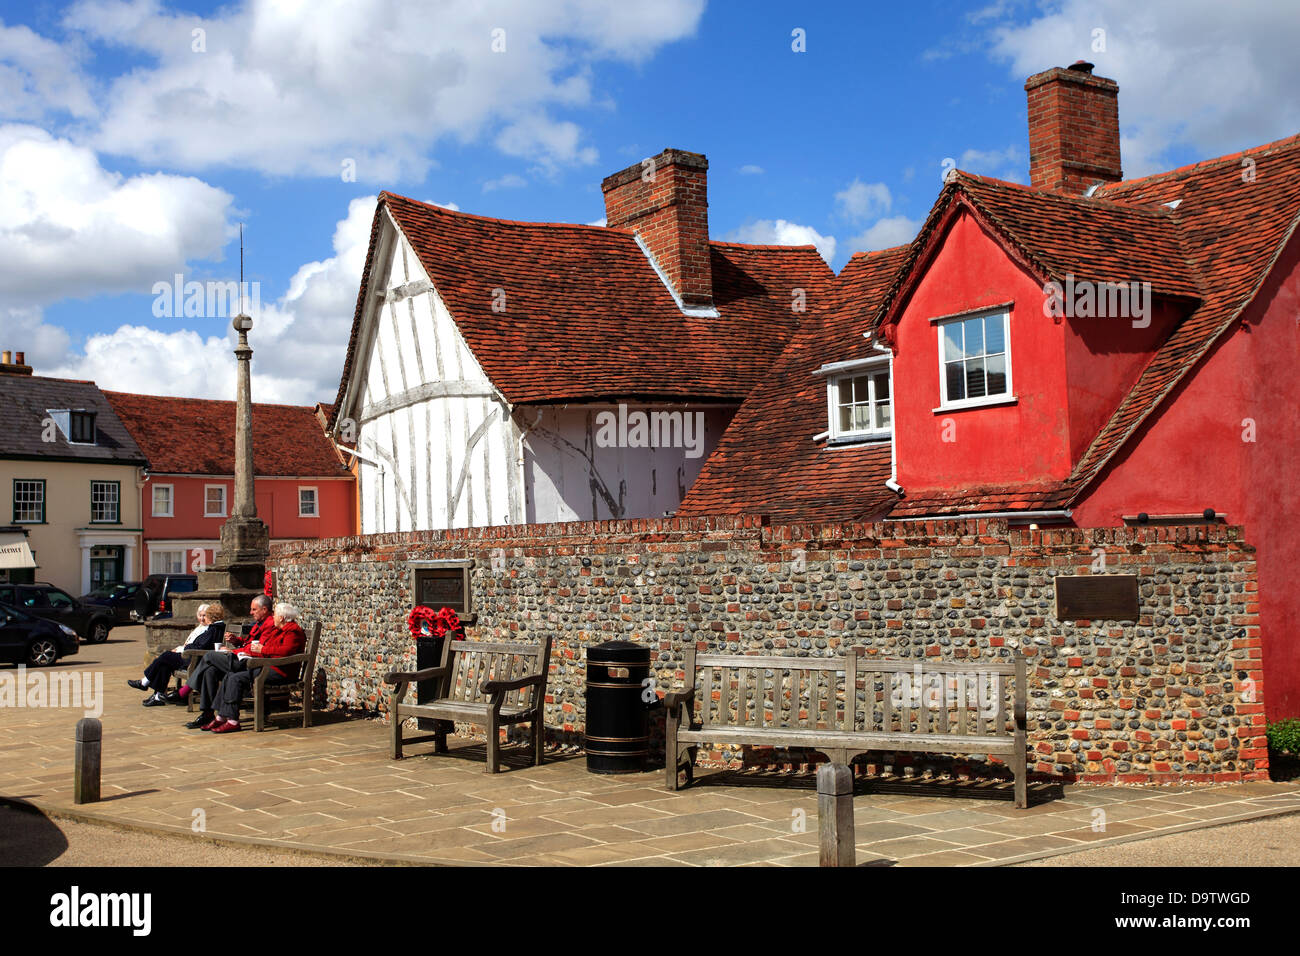 Colorful Half Timber Built Thatched Cottages, Lavenham village, Suffolk County, England, Britain - Stock Image